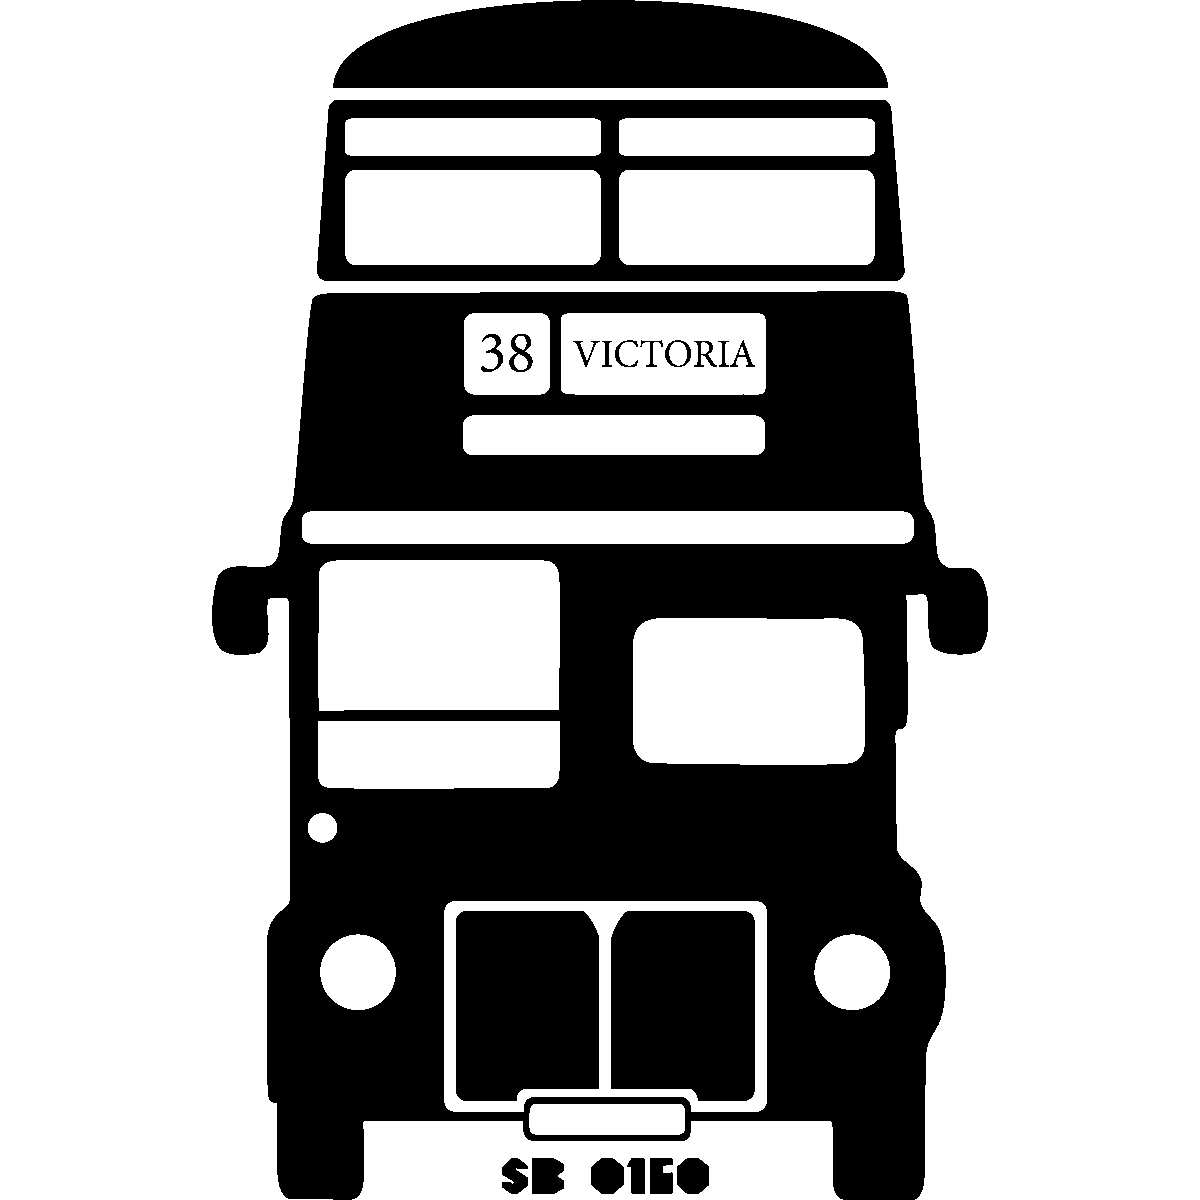 Stickers muraux londres sticker bus anglais ambiance - Dessin bus anglais ...